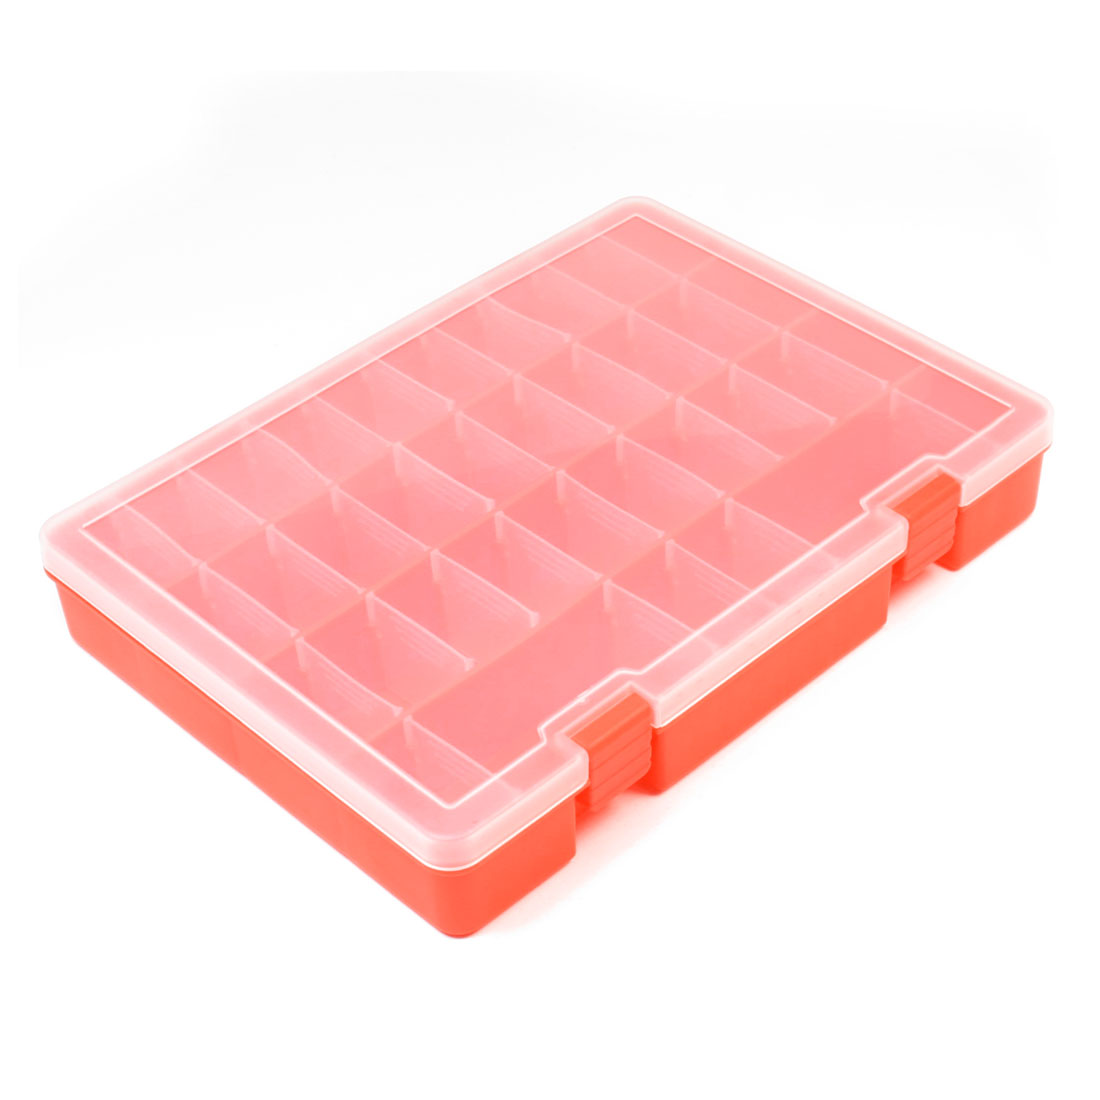 Clear White Orange Adjustable 32 Grids Jewelry Bead Fishhook Storage Case Box